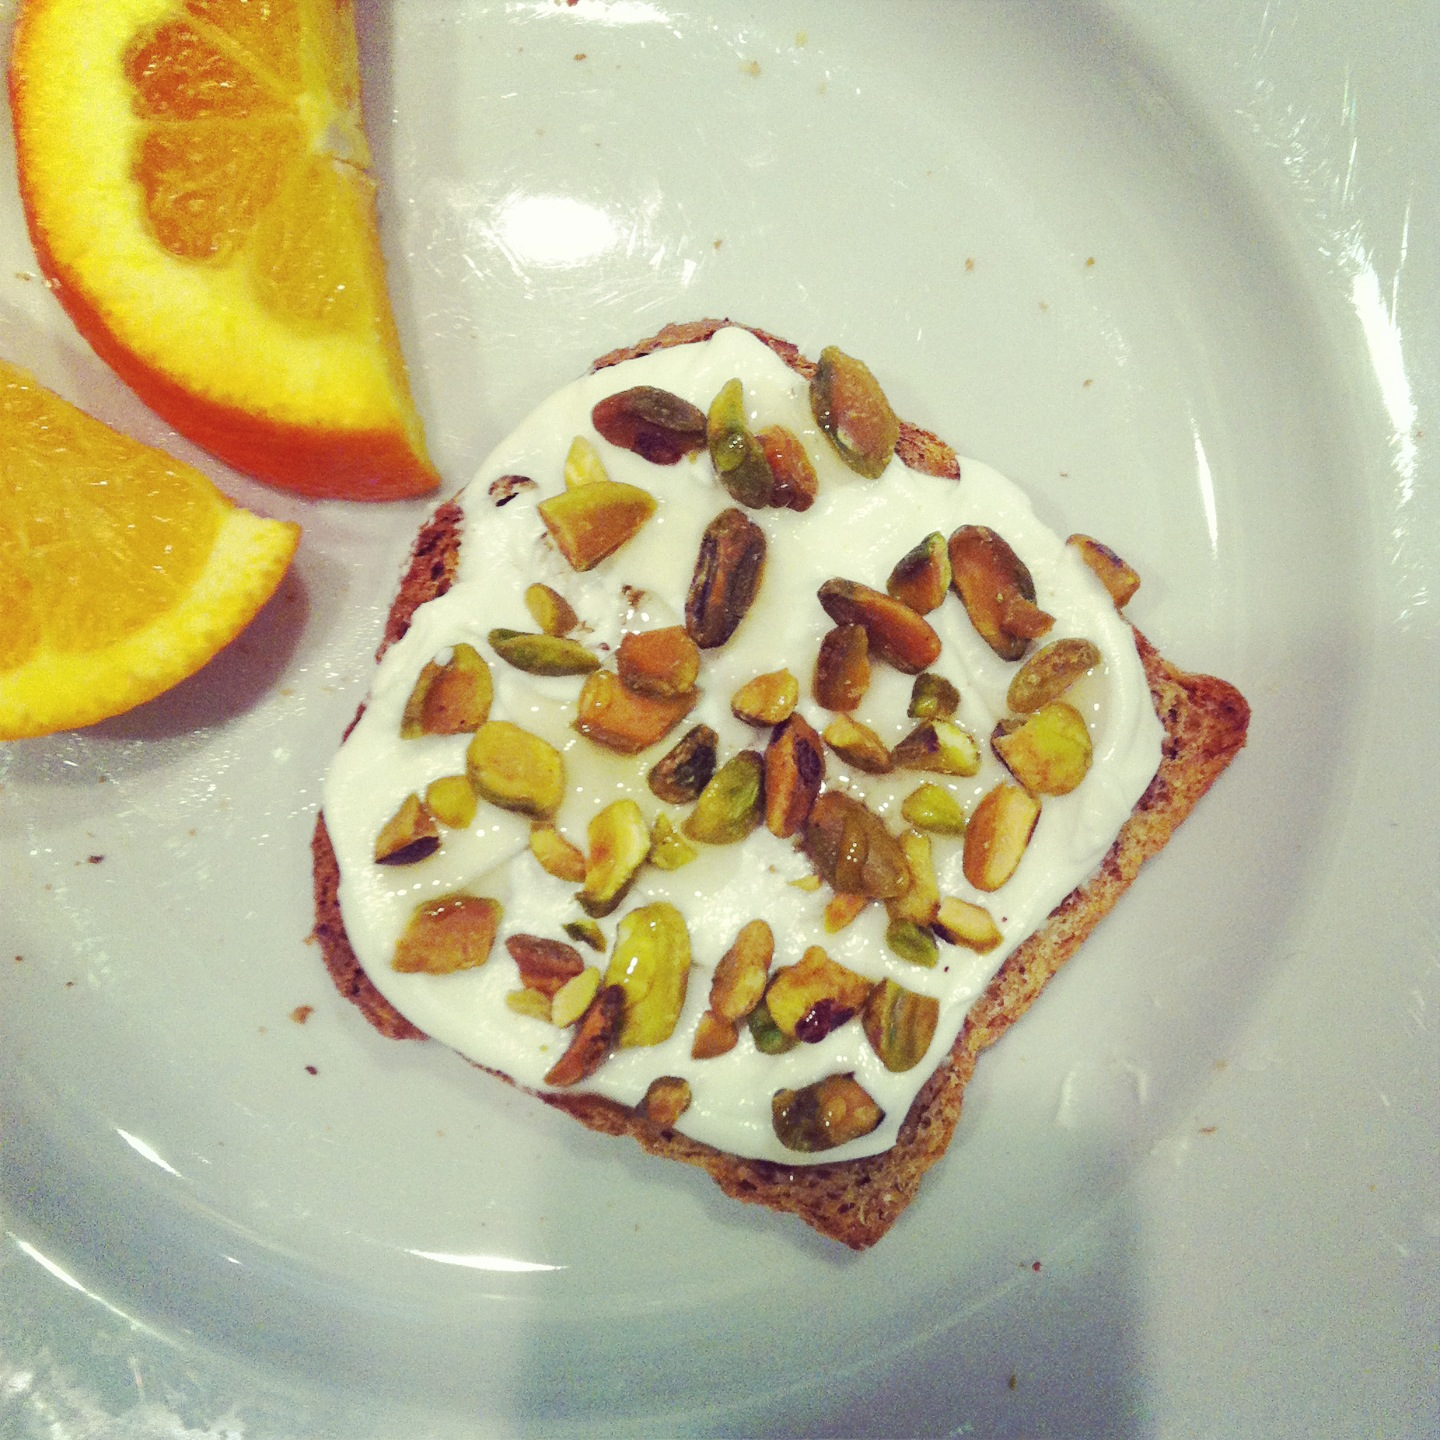 ... slices of sprouted bread (or your favorite whole grain bread), toasted